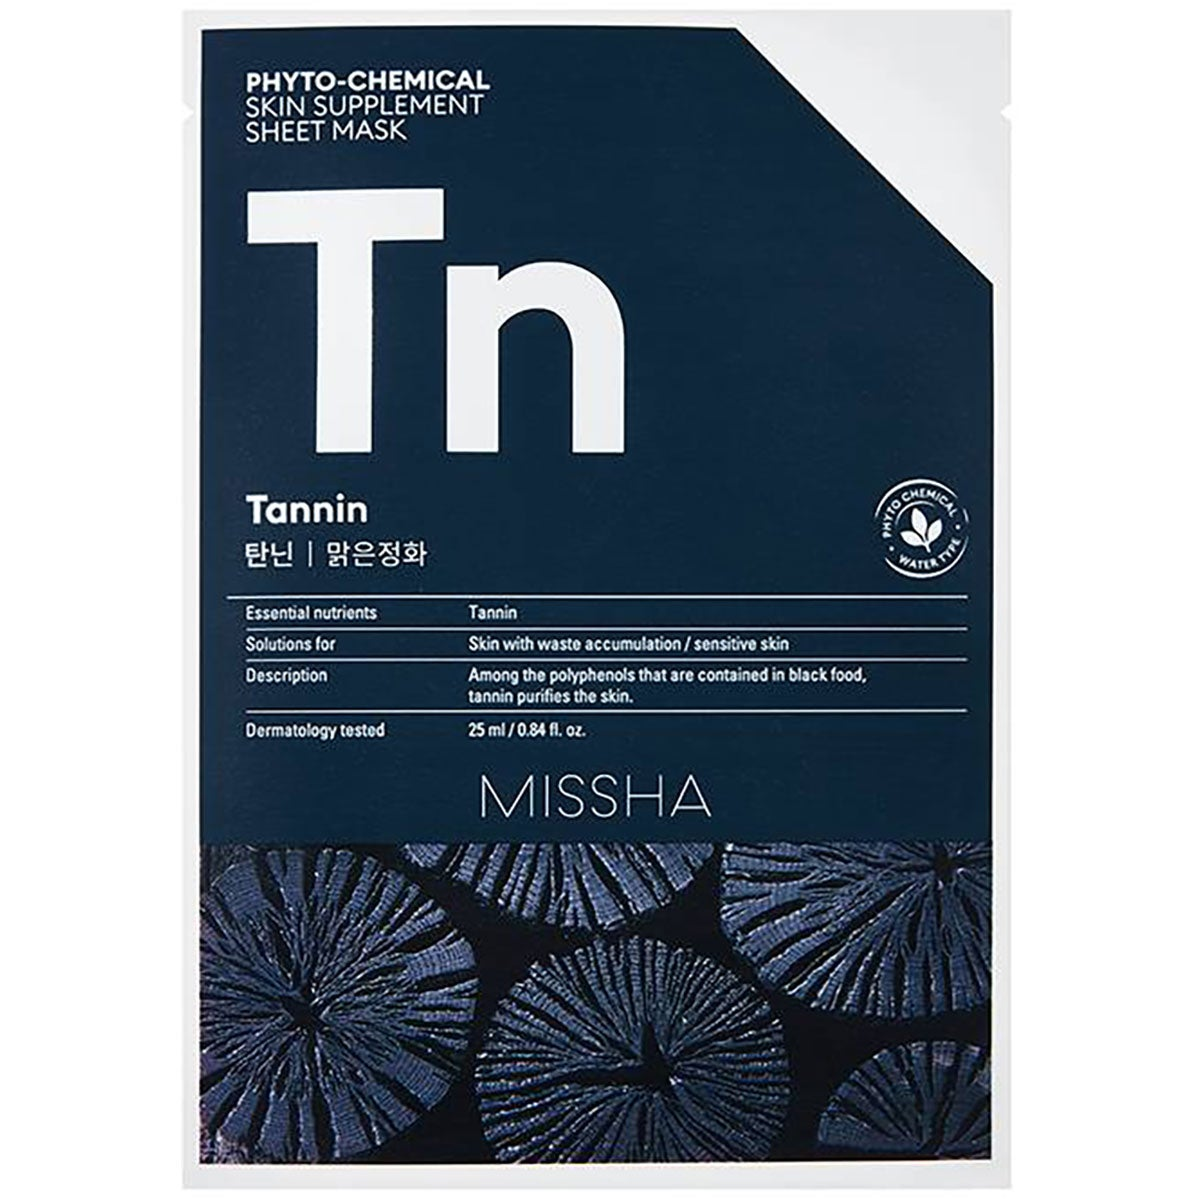 MISSHA Phytochemical Skin Supplement Sheet Mask